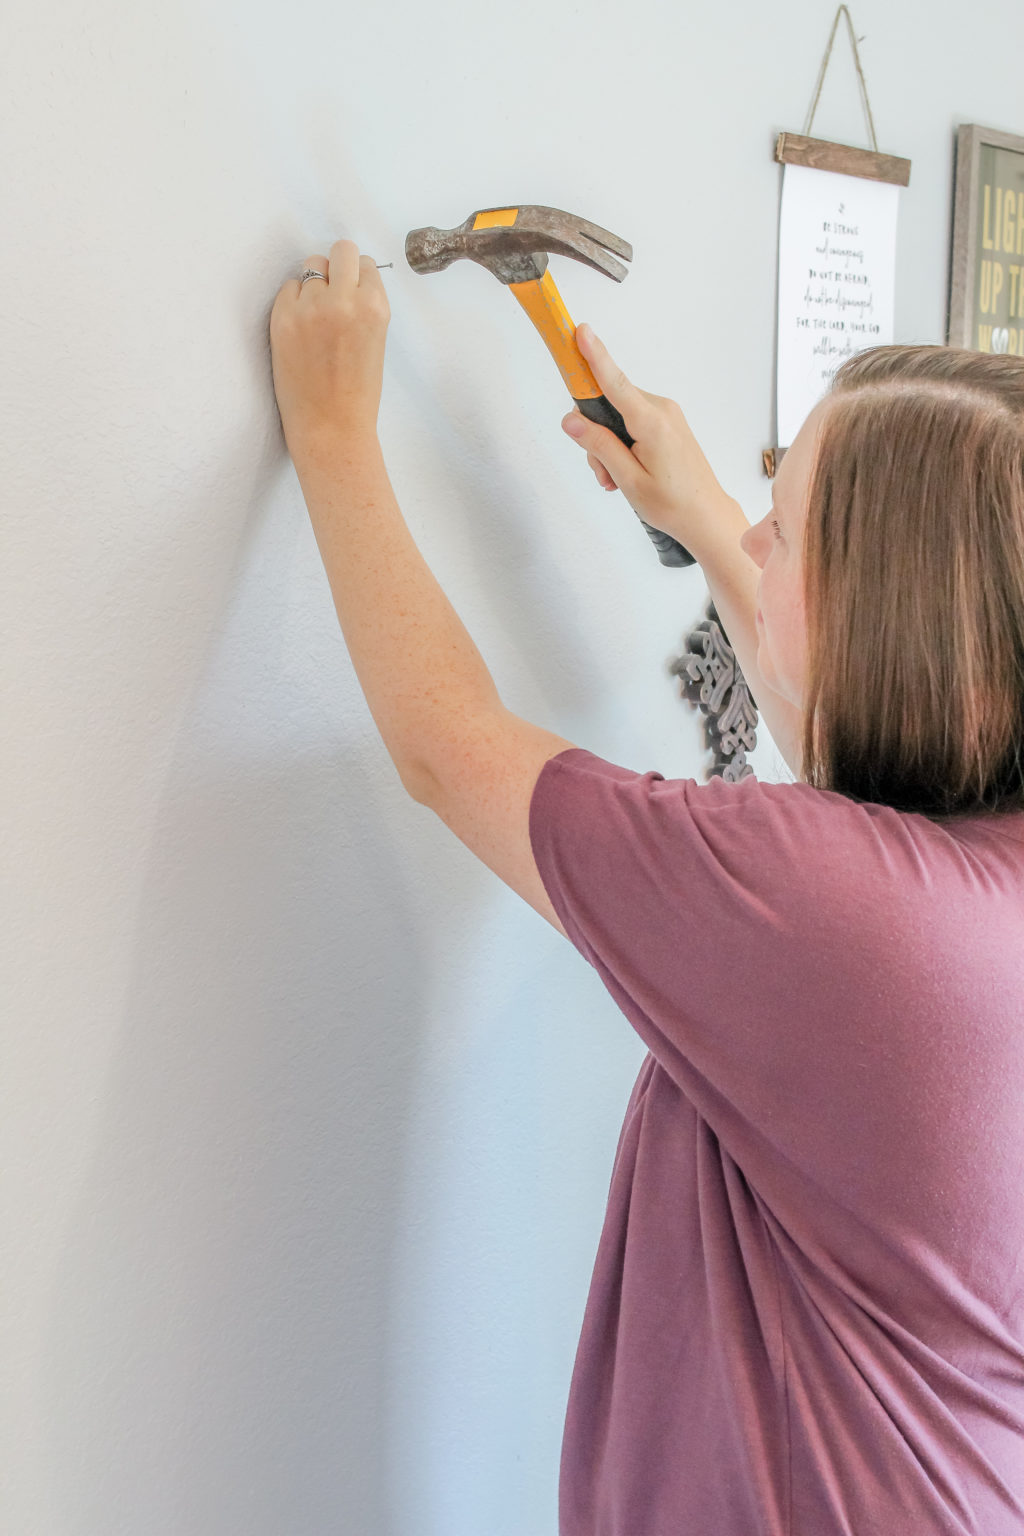 Woman hammering nail into wall